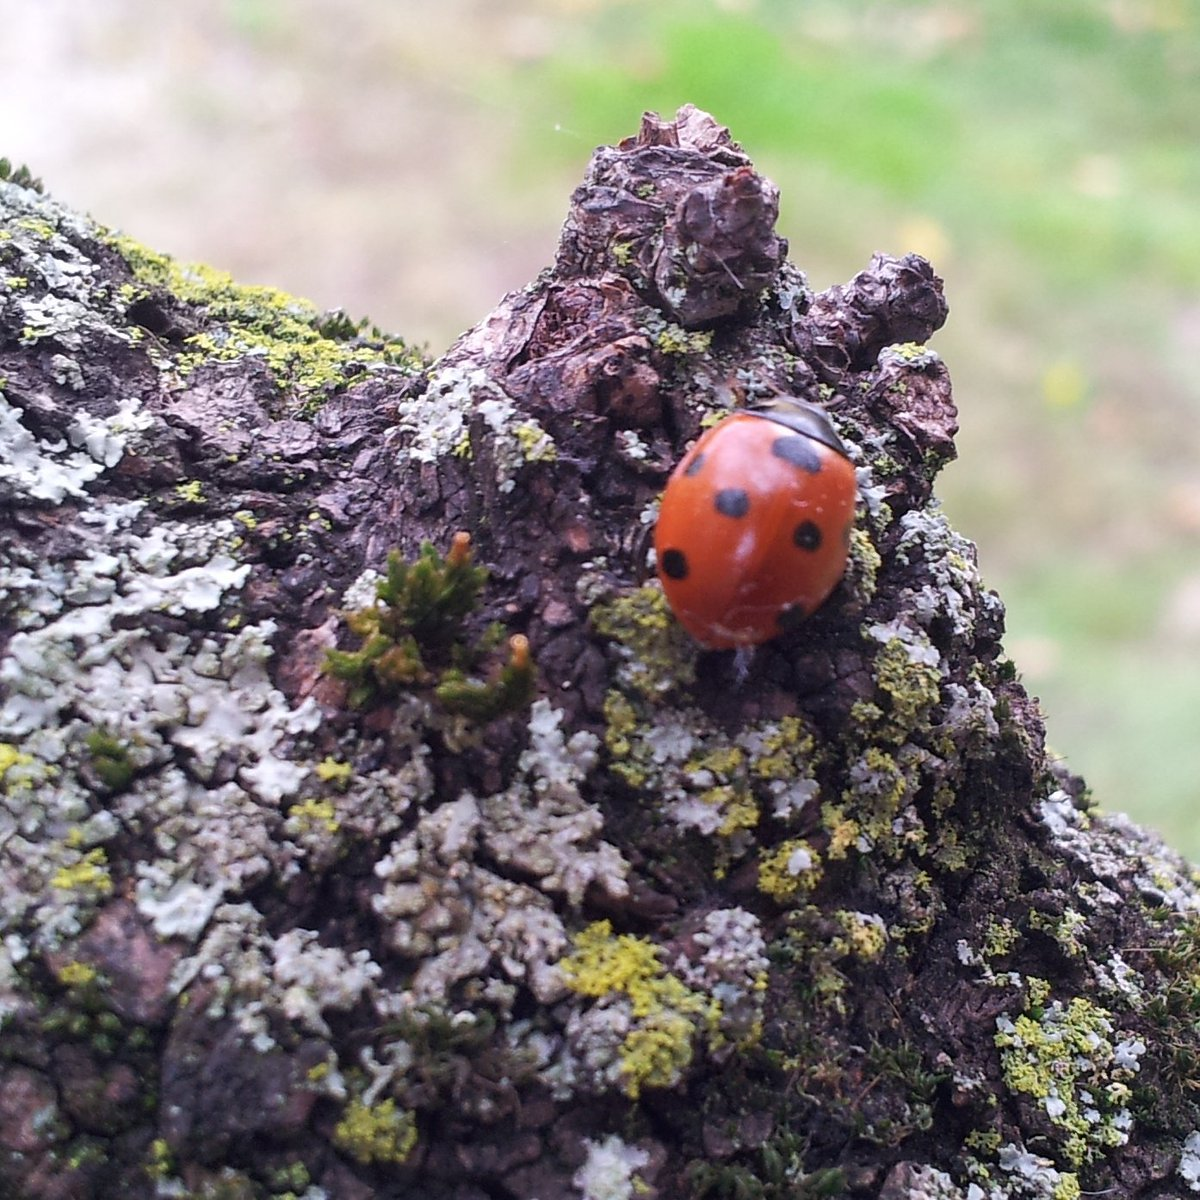 The #path of #knowledge is always steep, but it is always #worth to be explored (even for a #ladybug)! <br>http://pic.twitter.com/Z6LL42GK2t